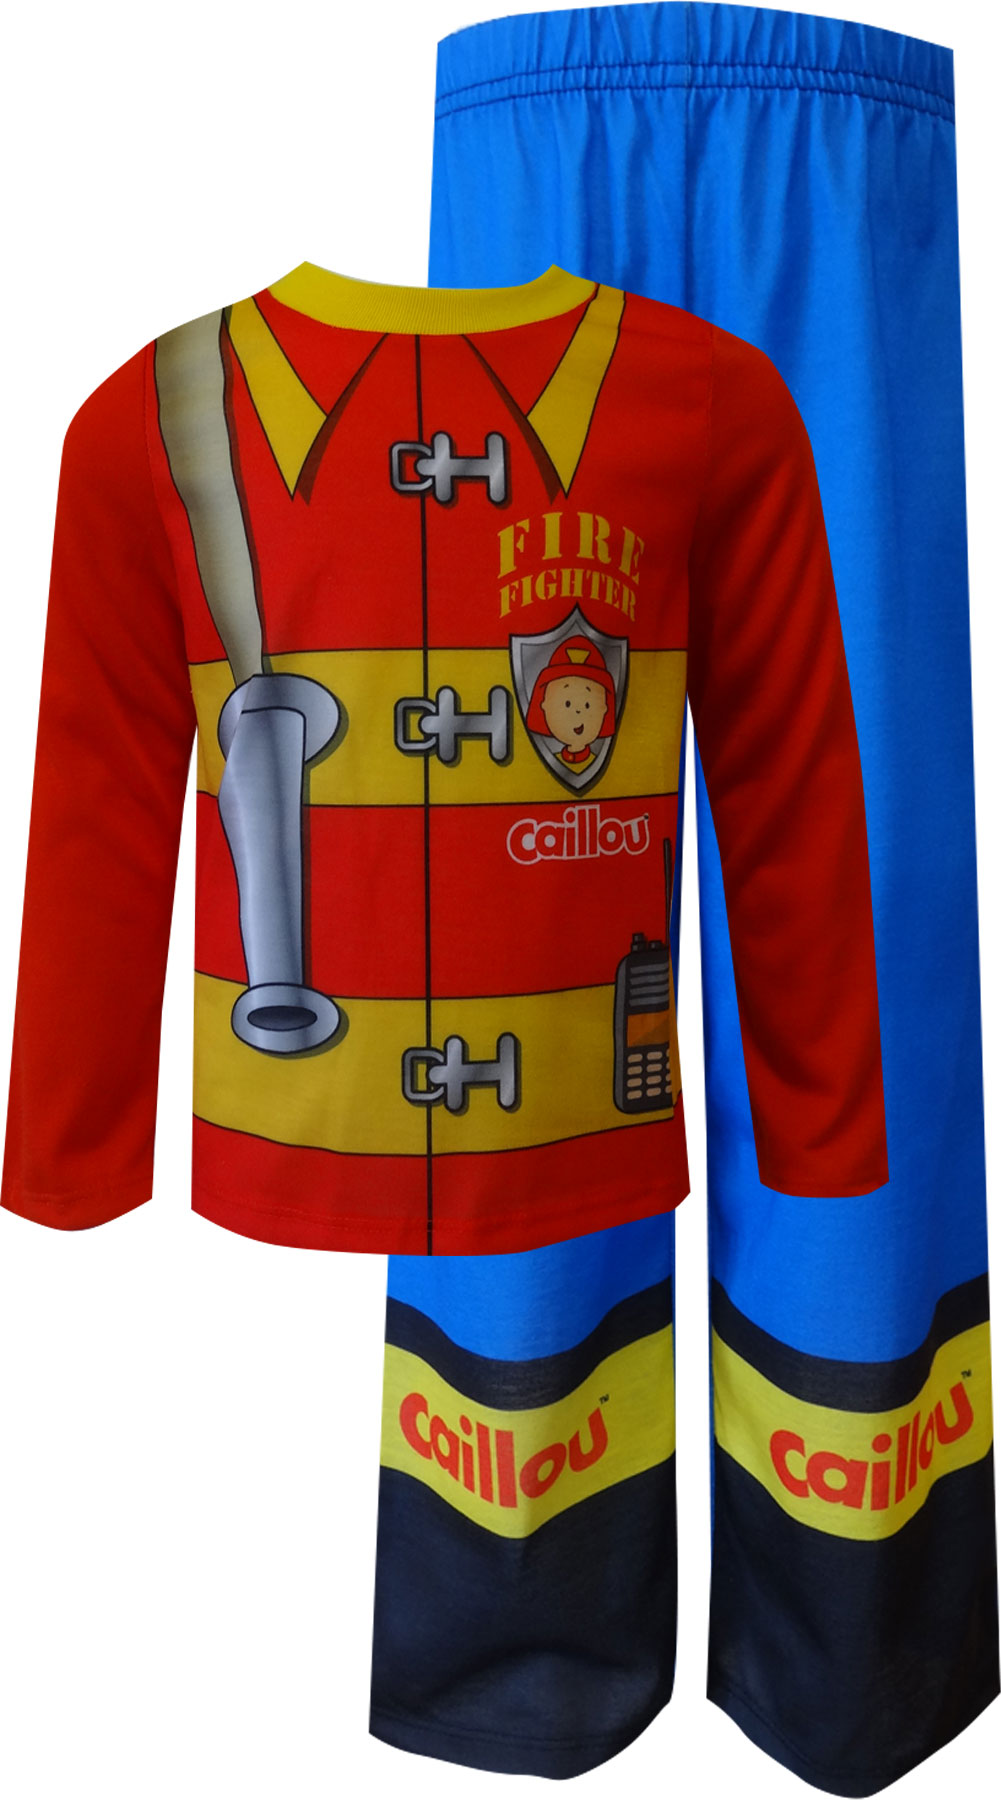 Image of Caillou Fire Fighter Uniform Toddler Pajamas for boys